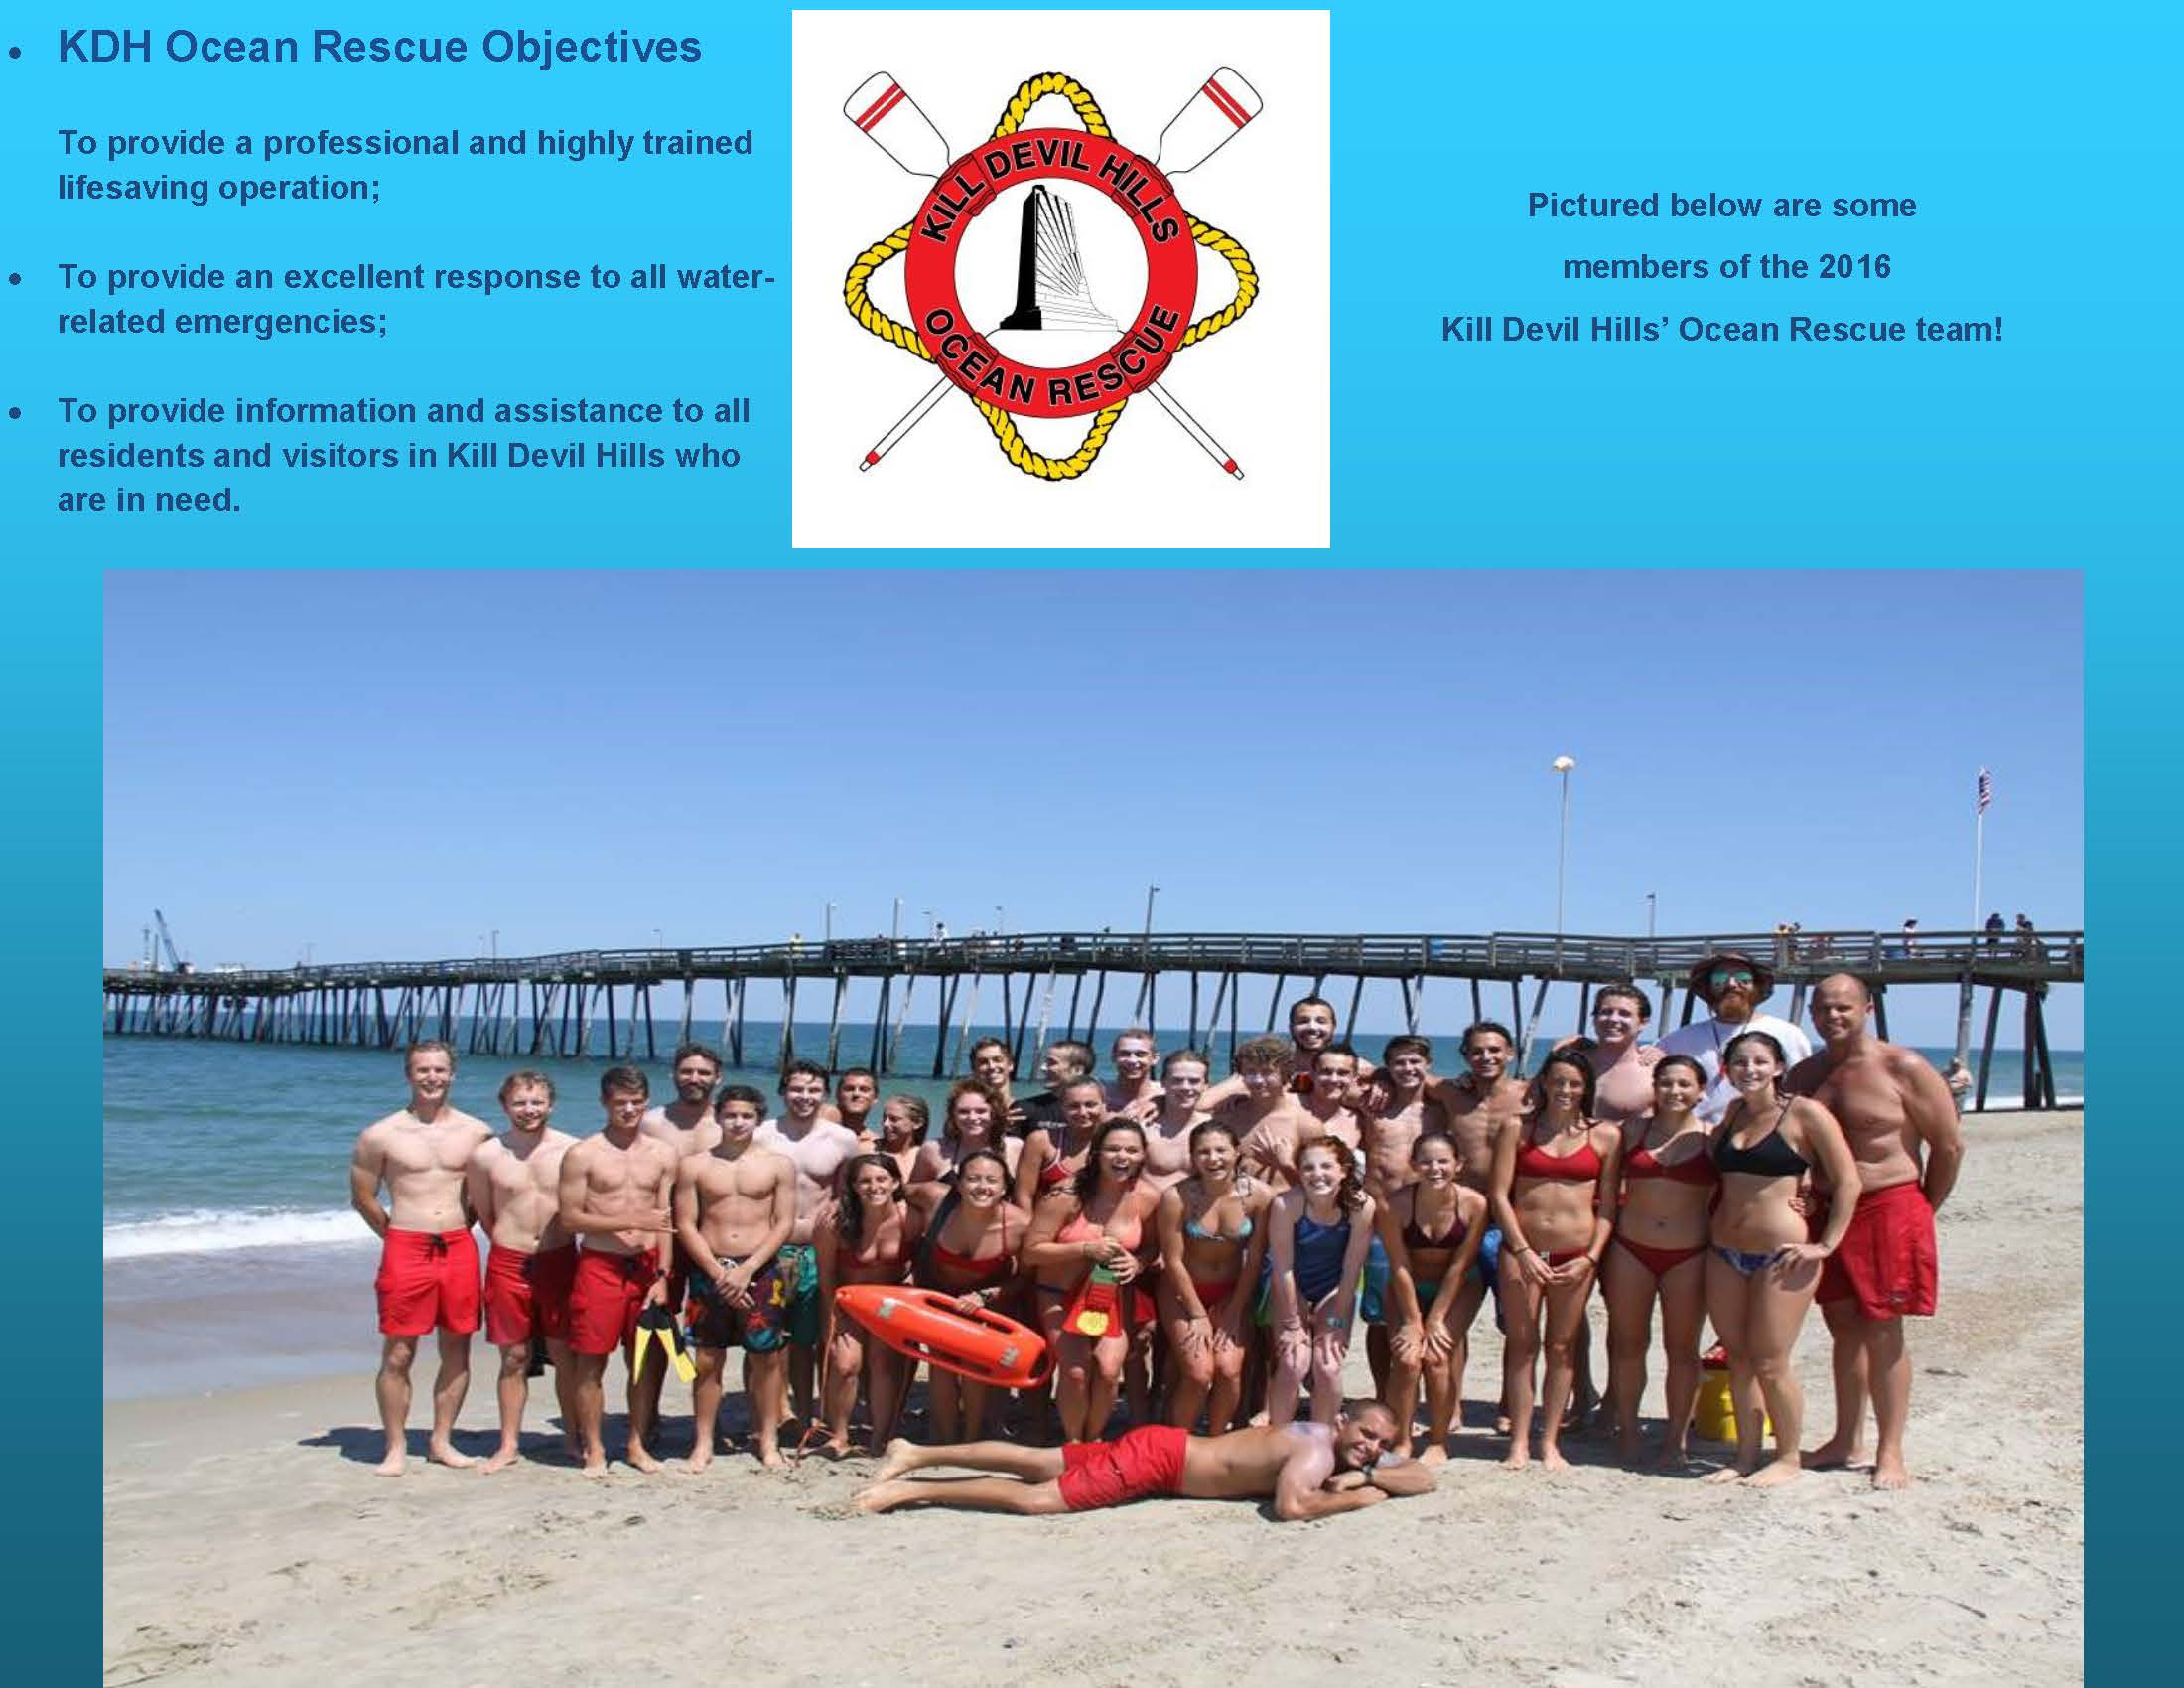 Kill Devil Hills Ocean Rescue 2016